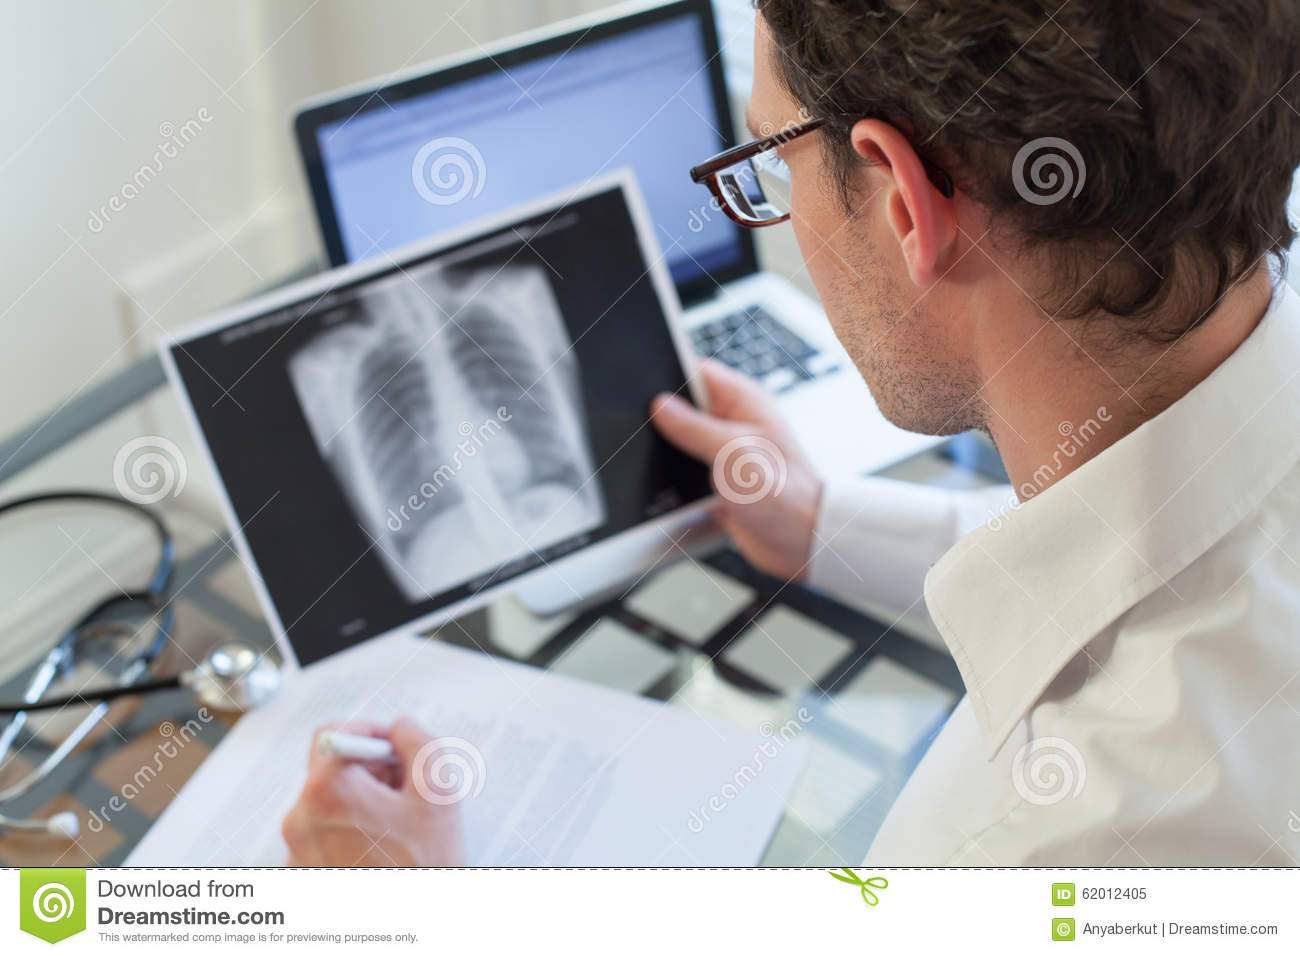 Doctor looking at x-ray of lungs, cancer diagnosis